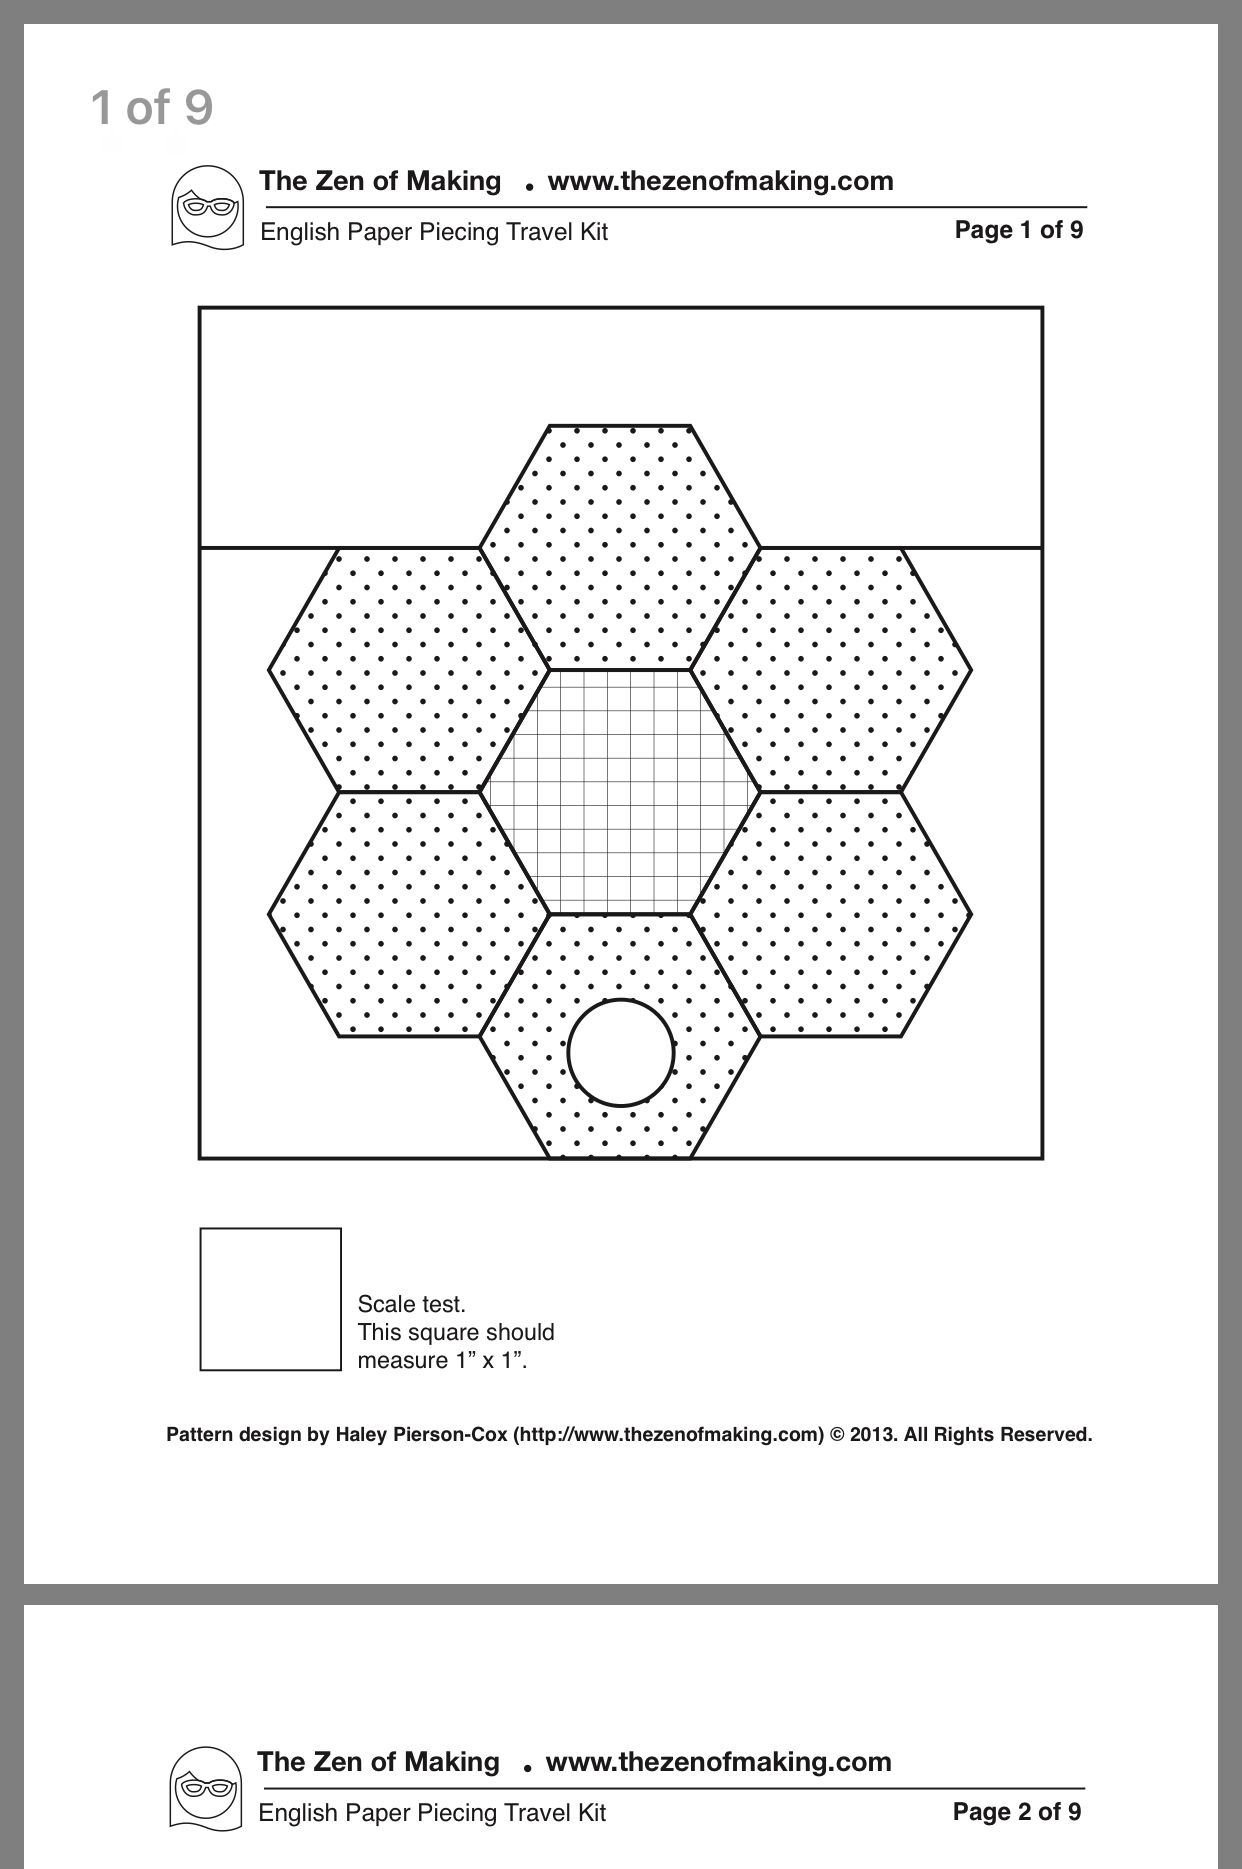 SUE DALEY DESIGNS Hexagon Template Patchwork with BUSYFINGERS EPP English Paper Piecing 5//8 inch